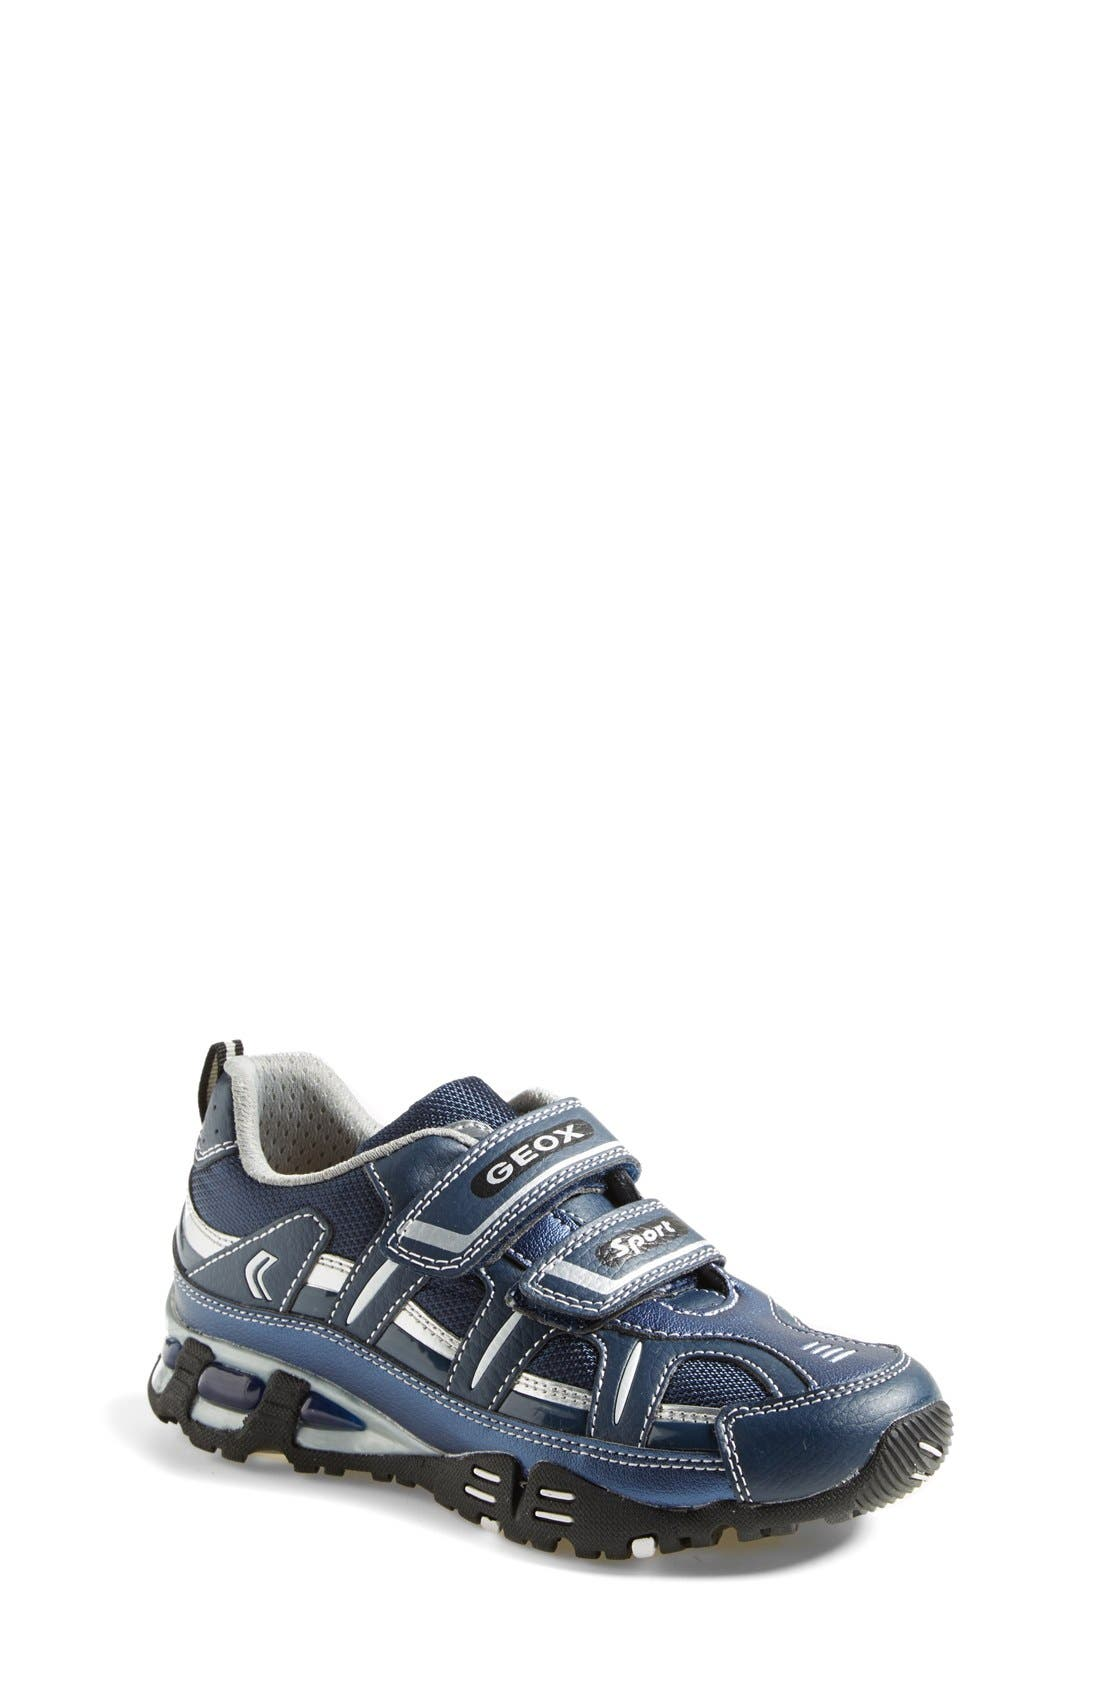 Alternate Image 1 Selected - Geox 'Light Eclipse 18' Sneaker (Toddler, Little Kid & Big Kid)